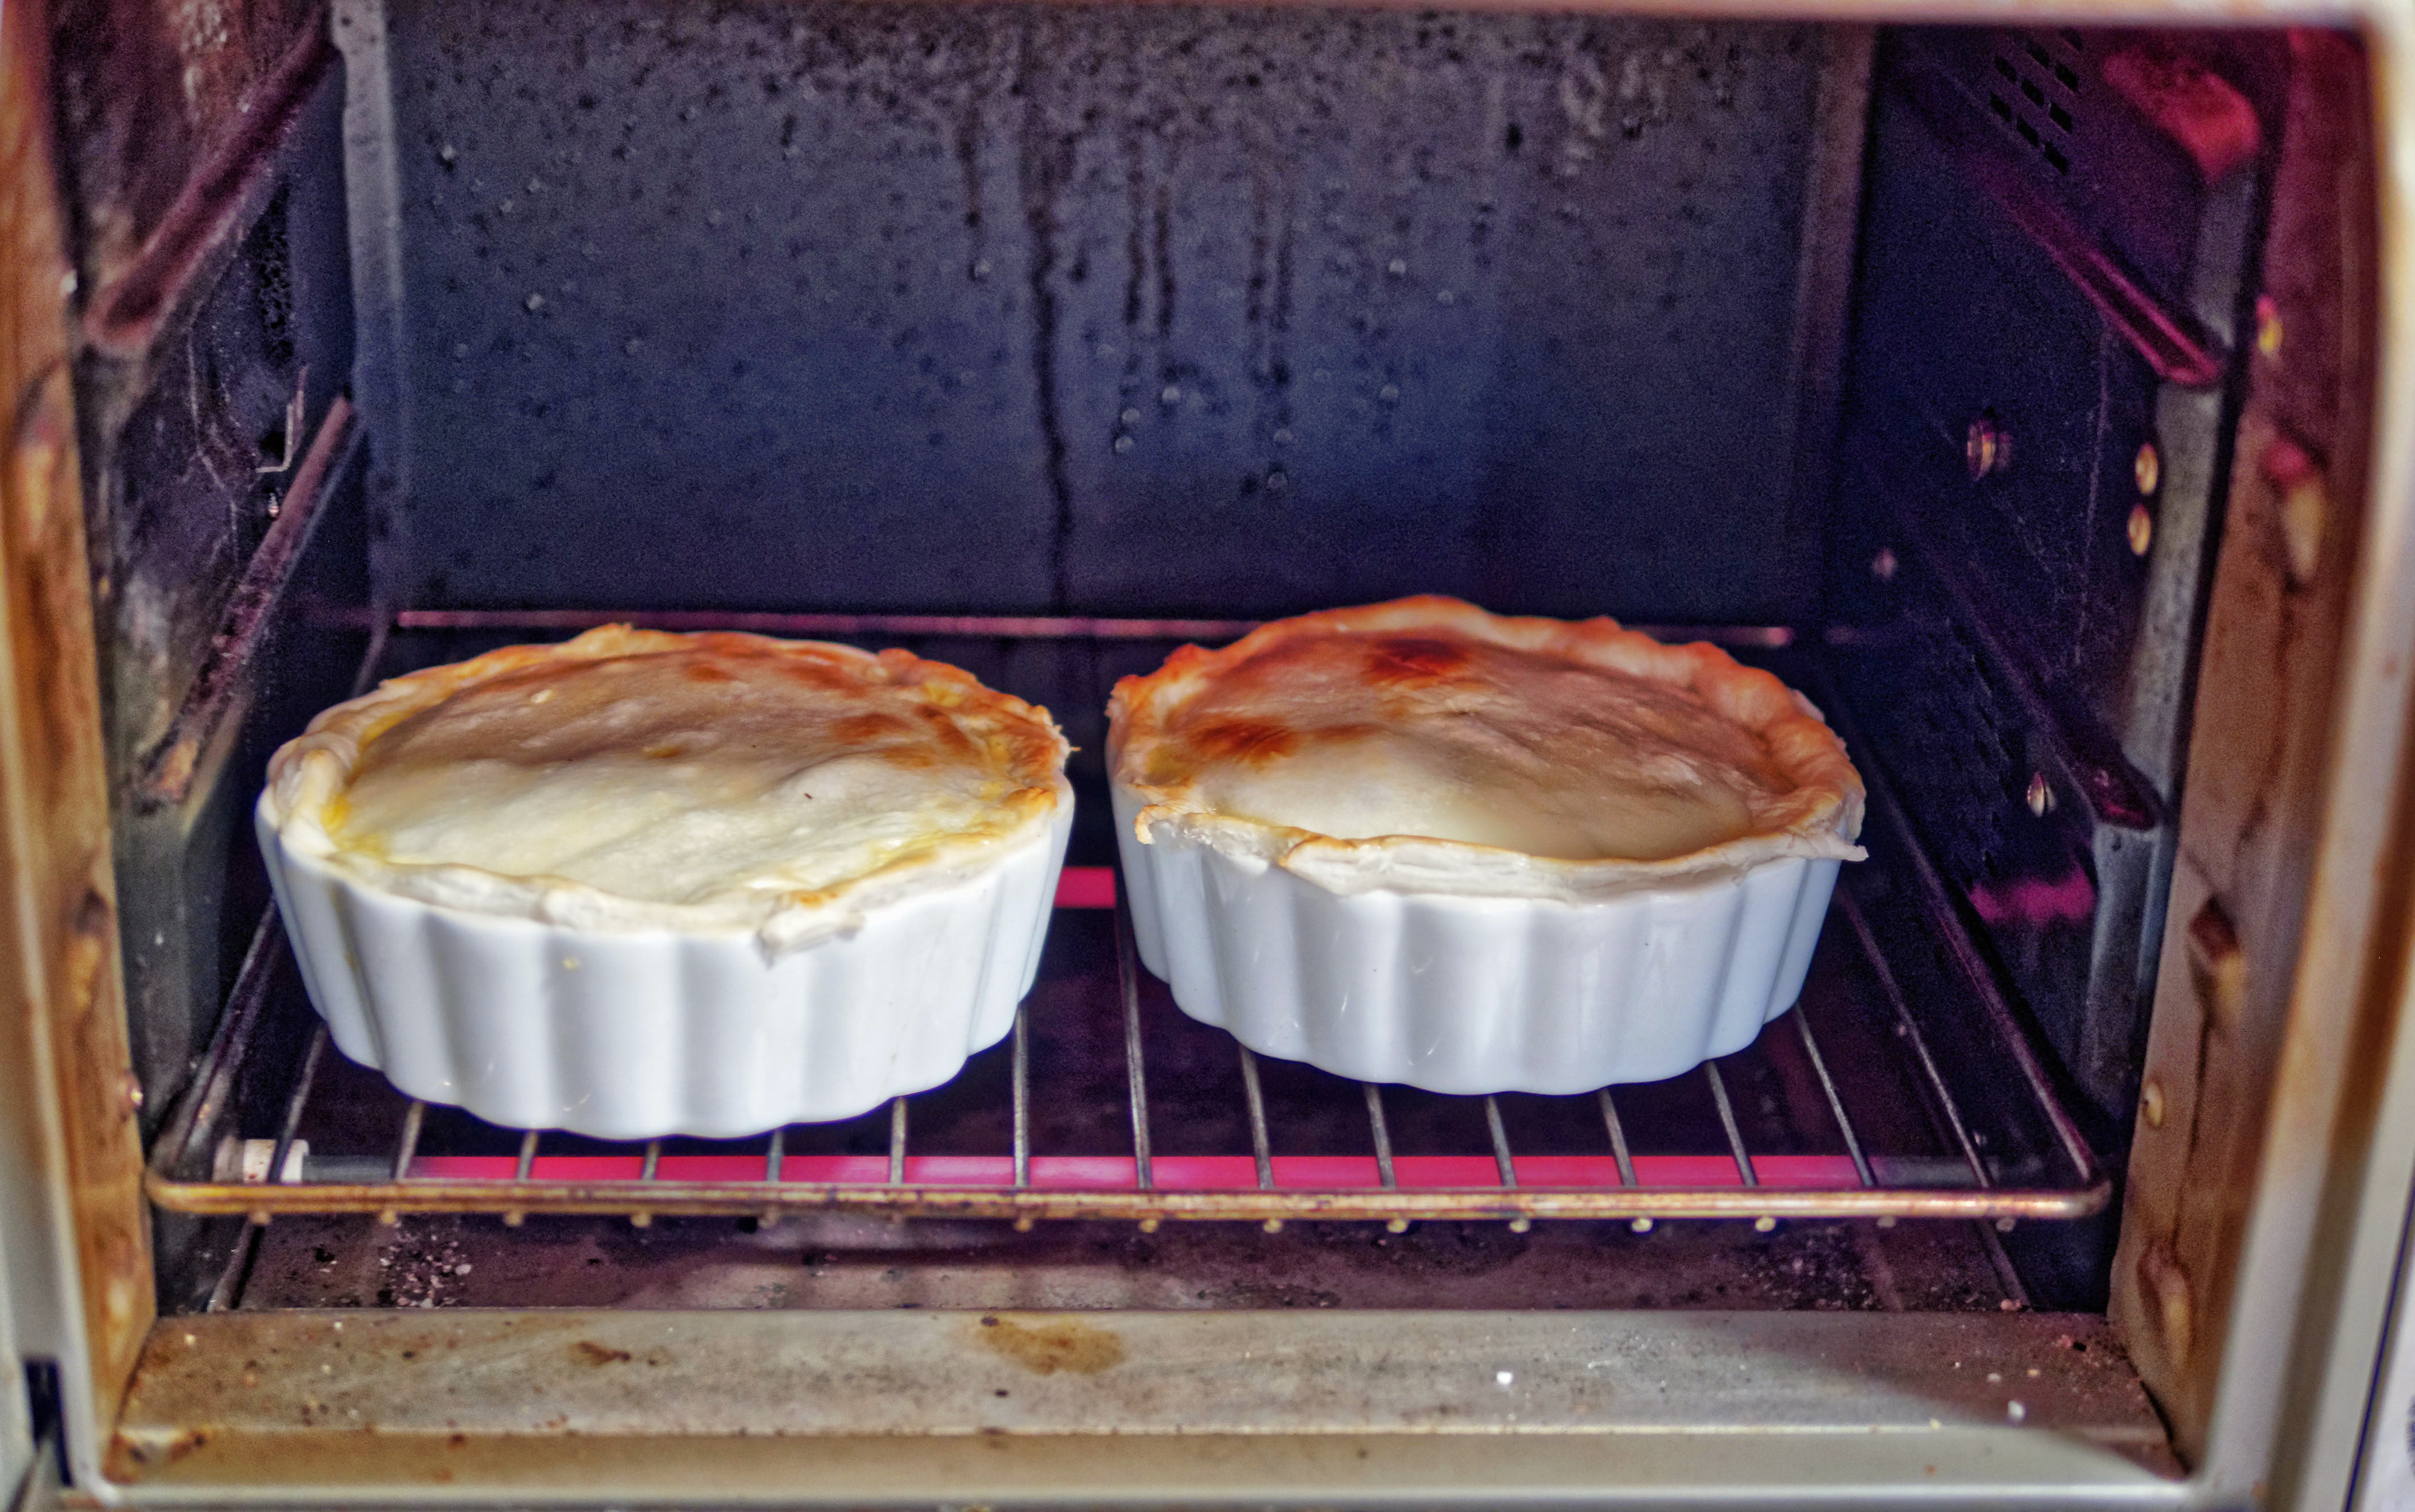 Steak-and-kidney-pie-3.jpeg